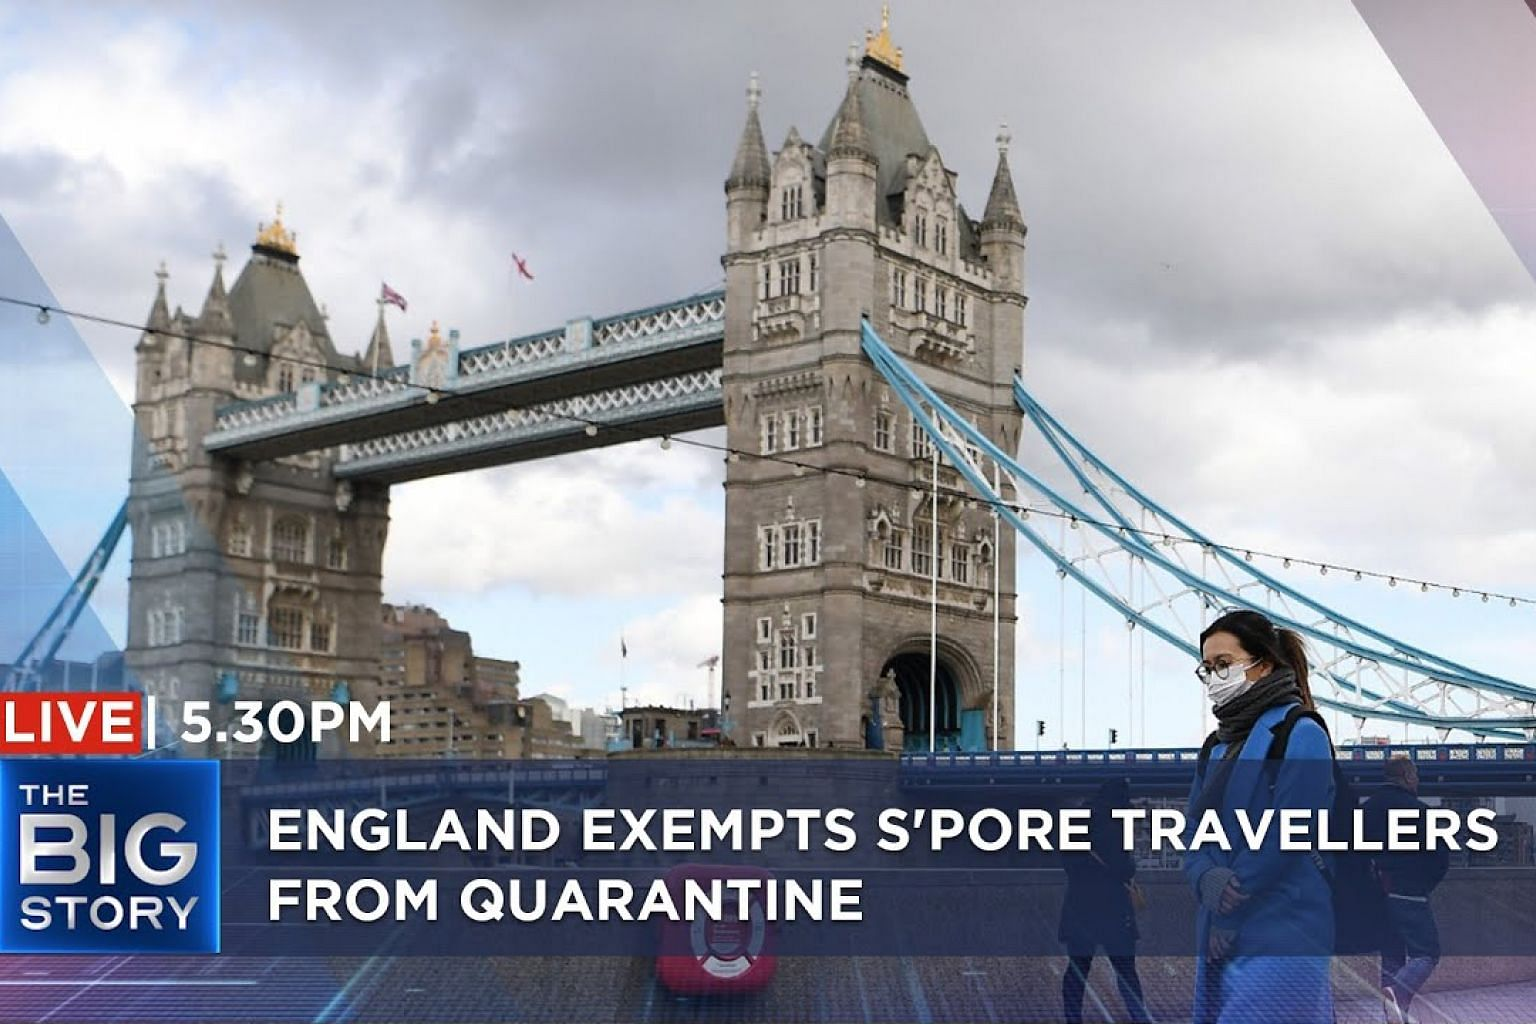 England exempts S'pore travellers from quarantine – what you need to know | THE BIG STORY